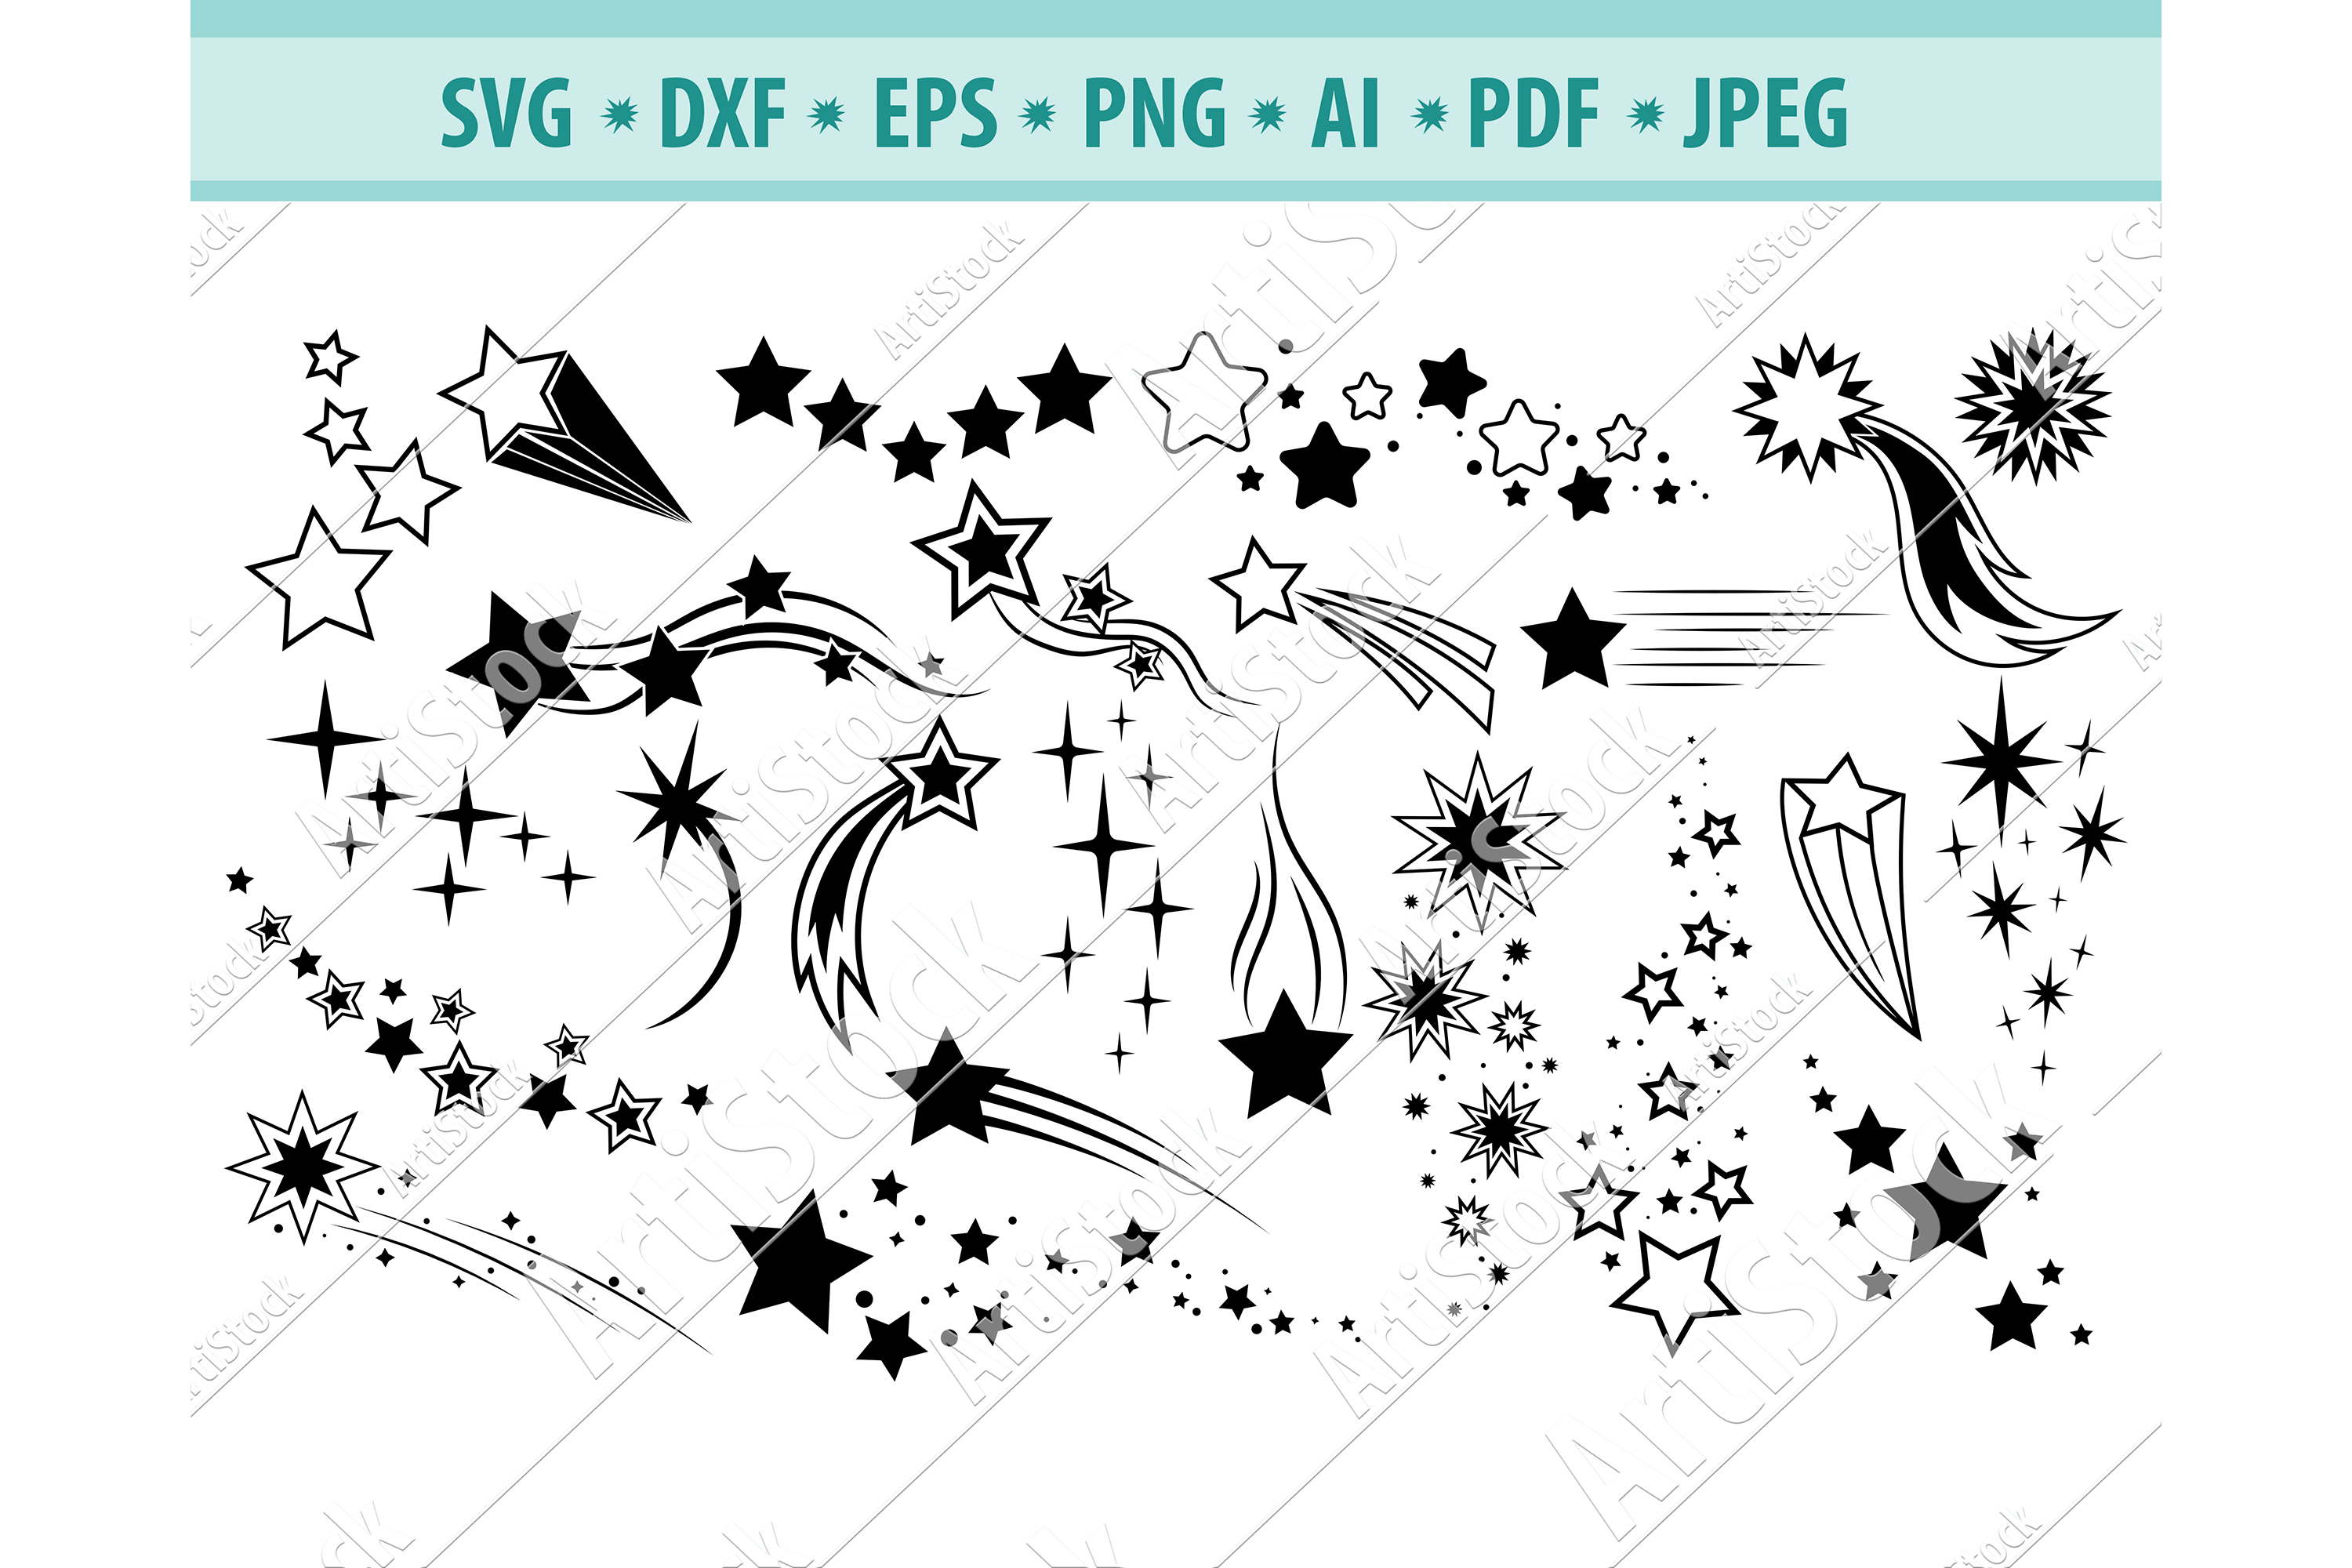 Shooting stars, Falling stars Svg, Comets Svg, Dxf, Png, Eps example image 1